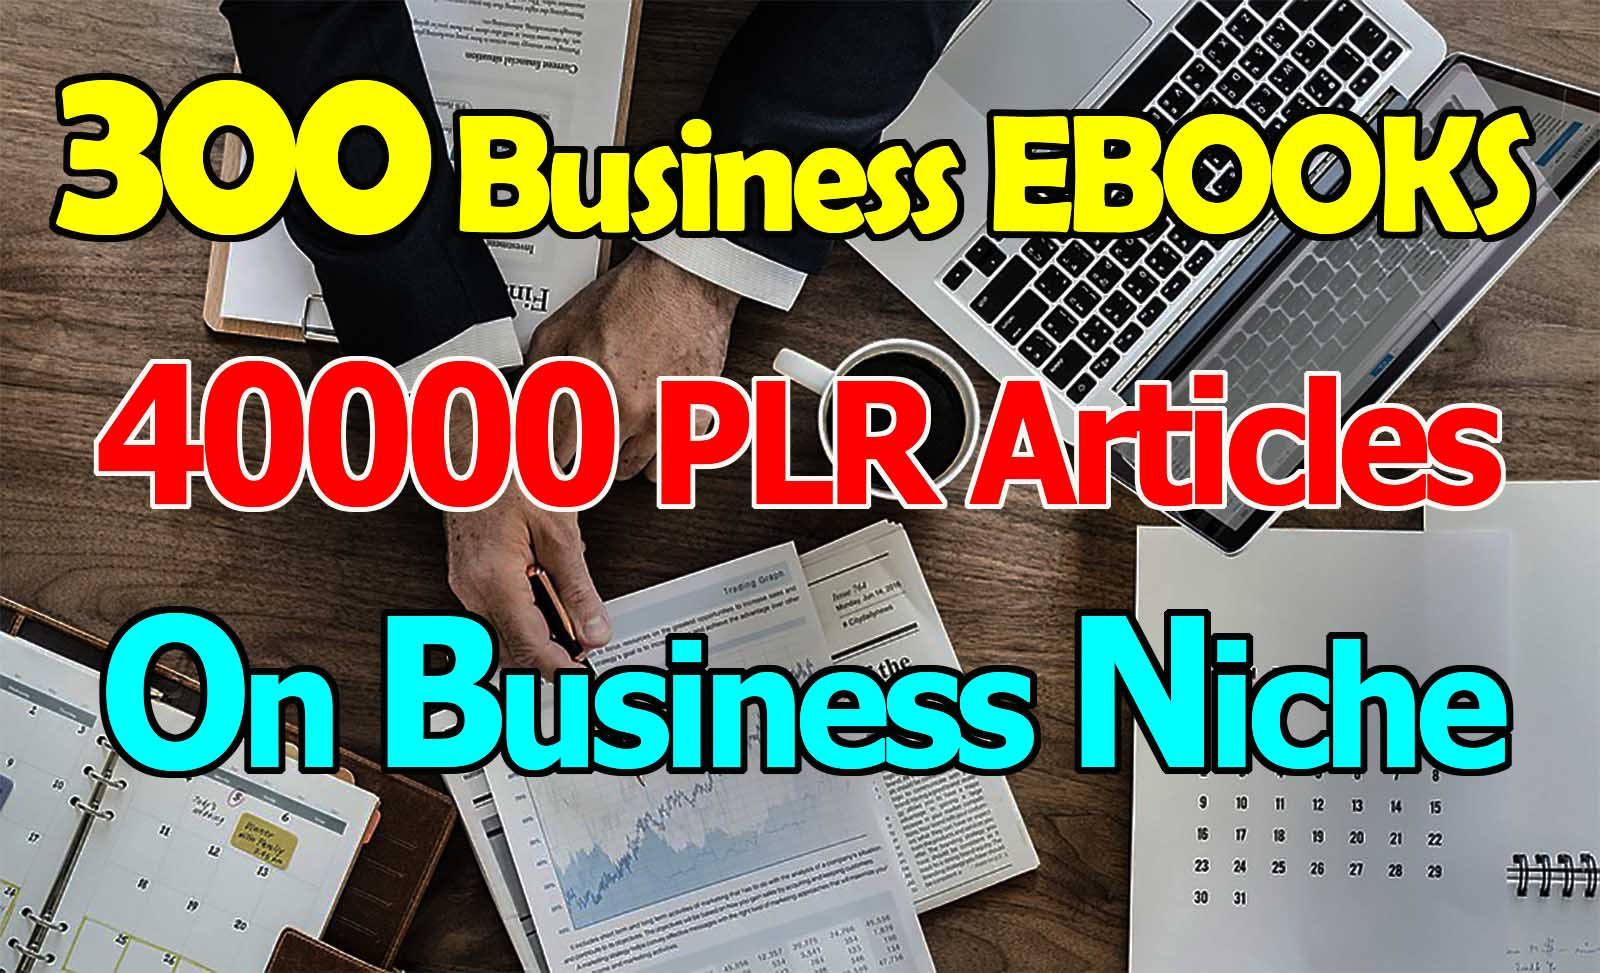 Get 300 EBooks 40K PLR Articles On Business Niche